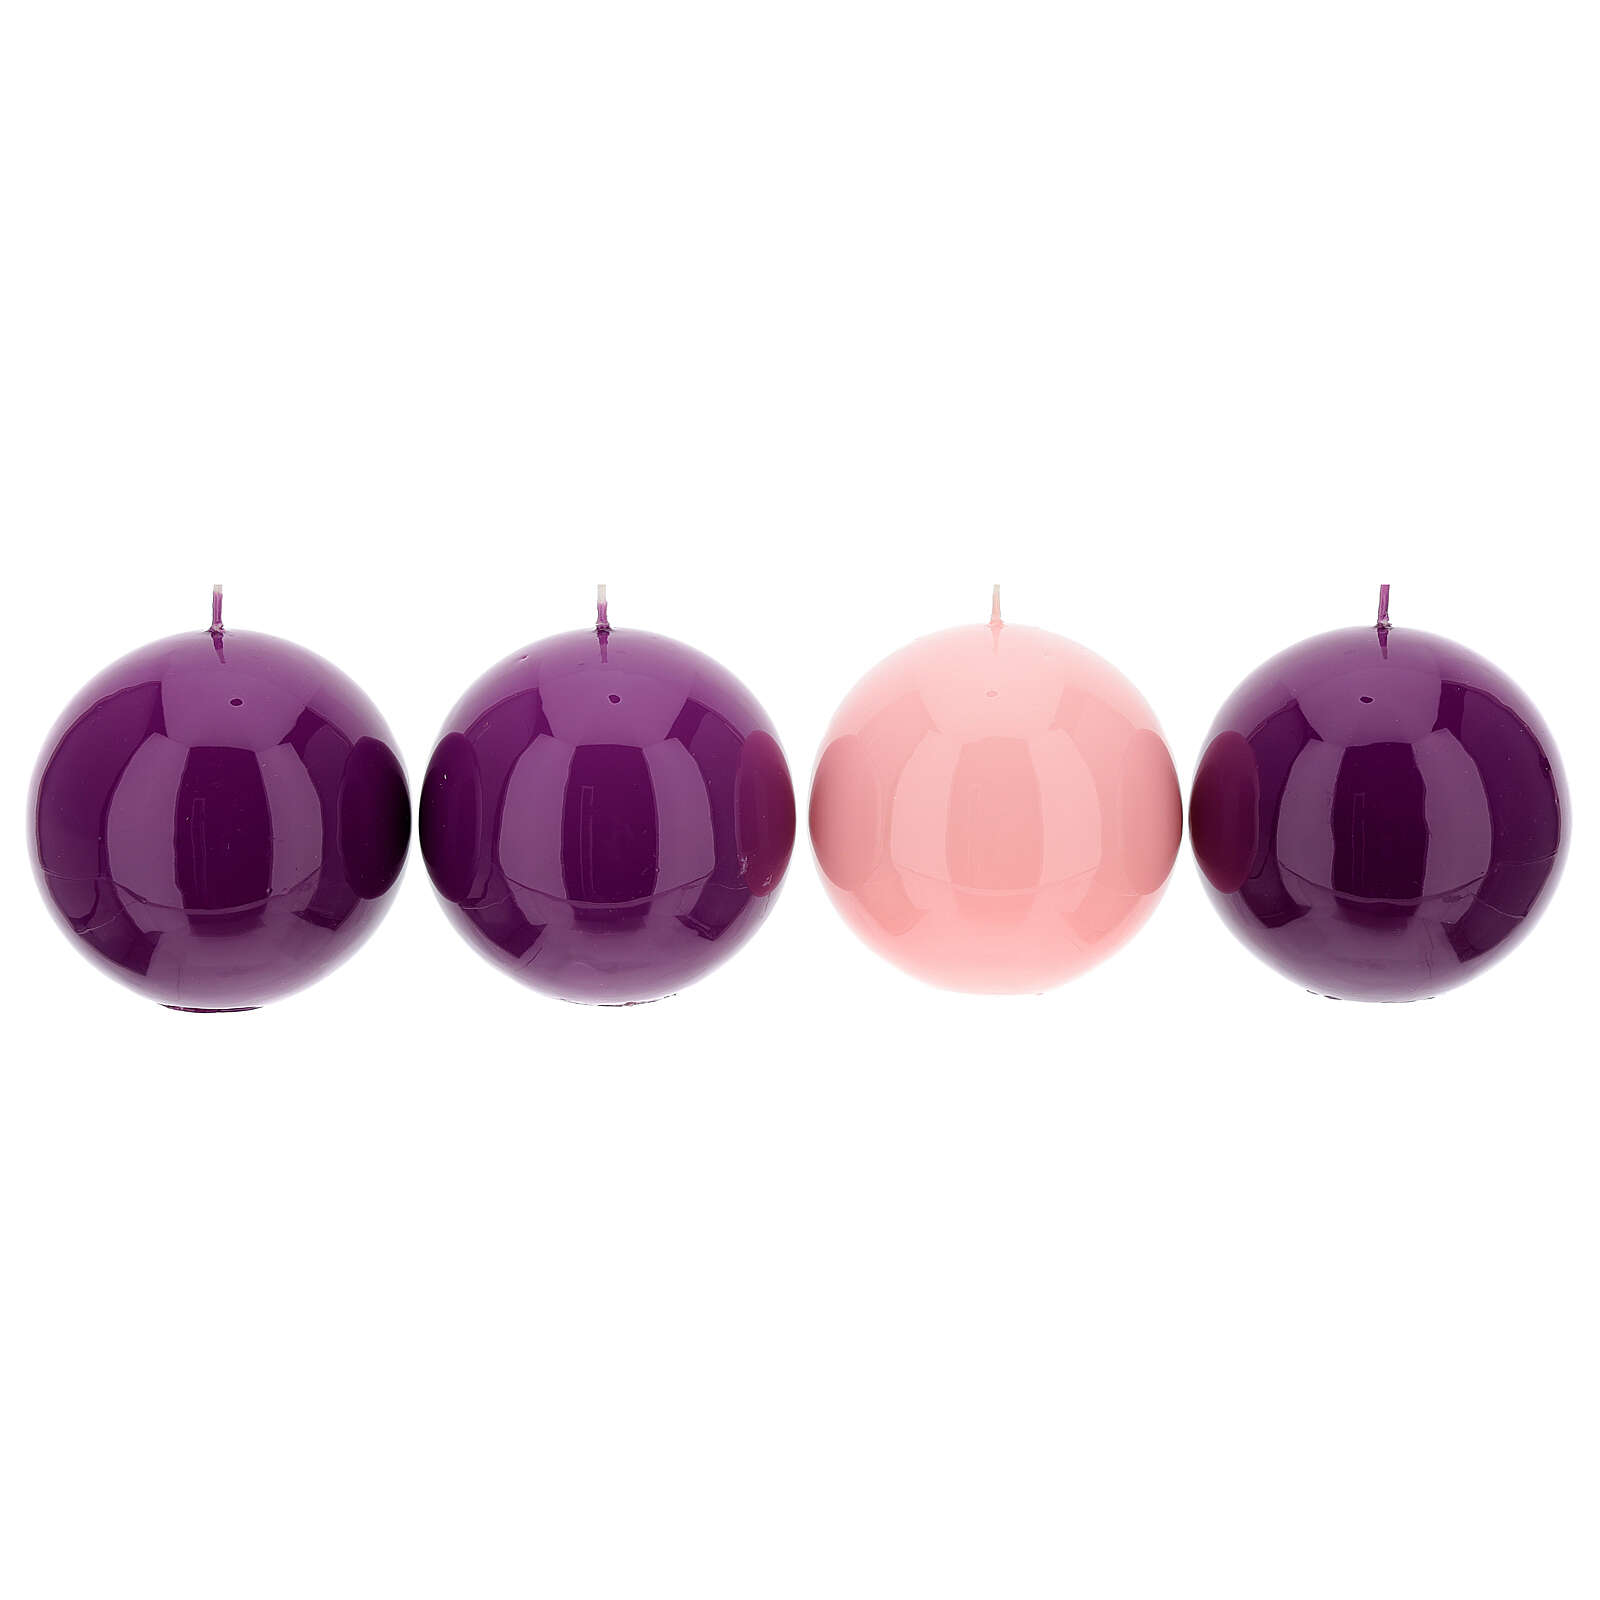 Kit of Advent candles 4 shiny spheres 10 cm 3